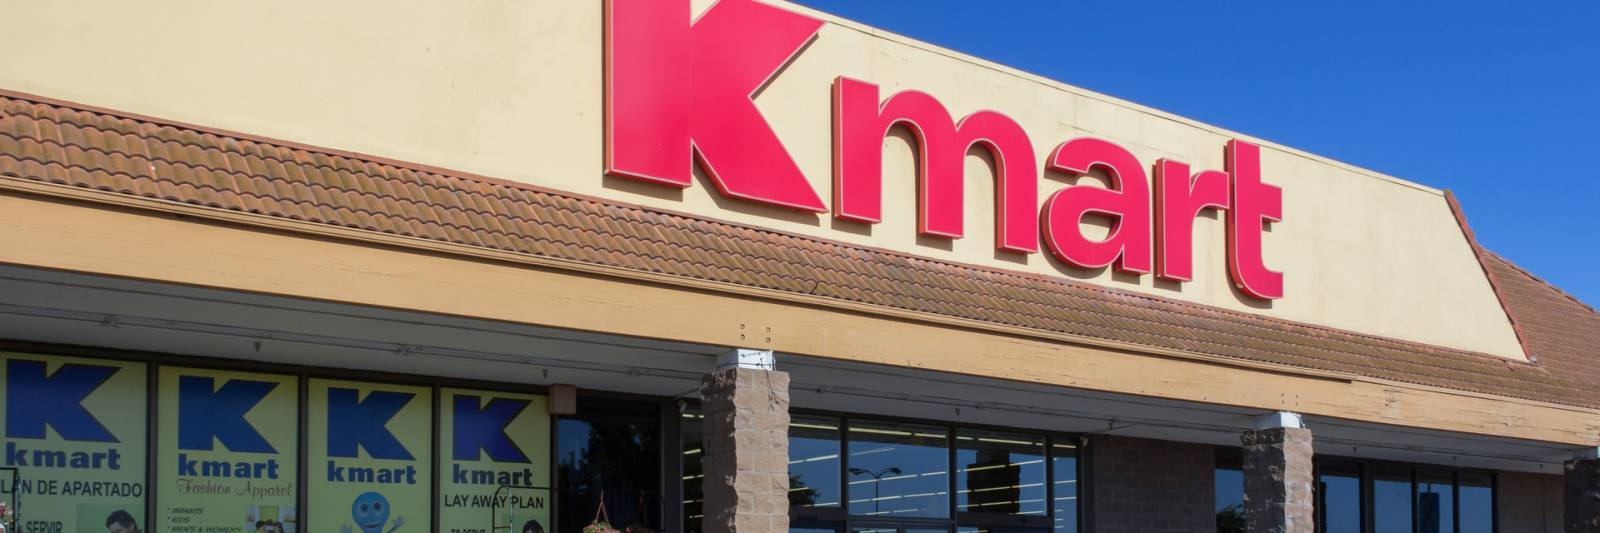 Us Department Store Kmart Hit By Egregor Ransomware